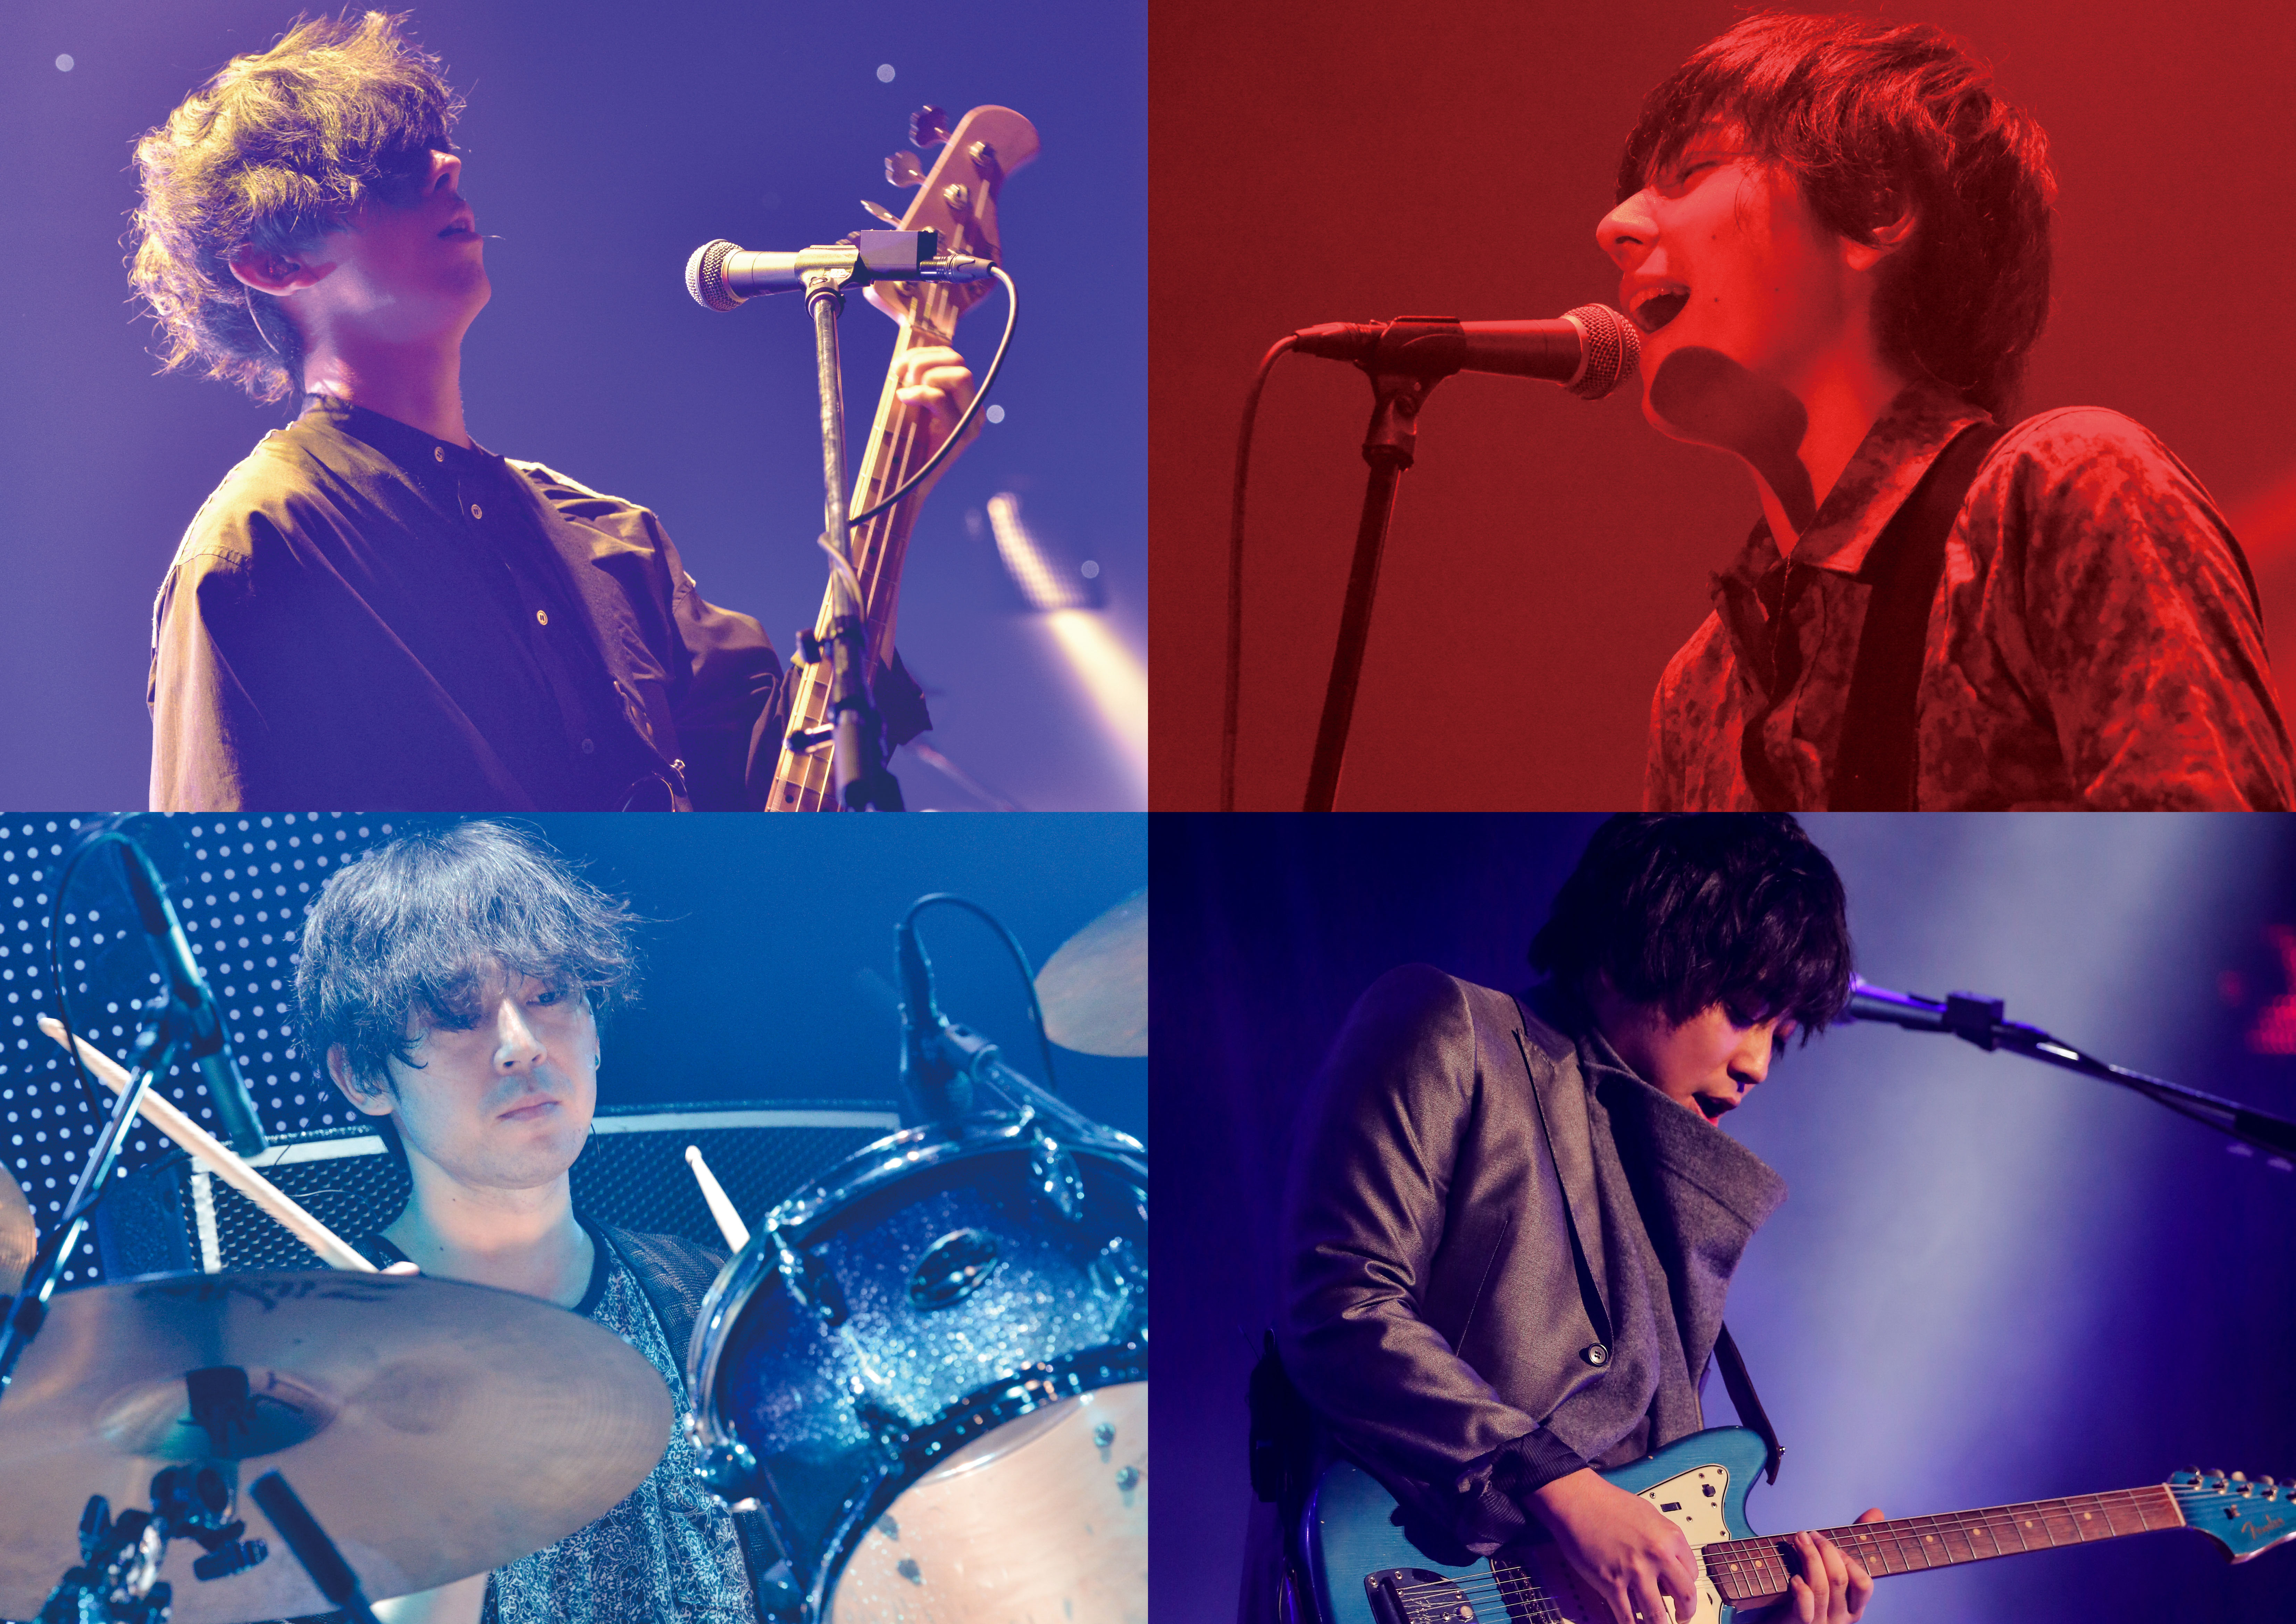 flumpool returns to Singapore for WHAT ABOUT EGGs? Tour